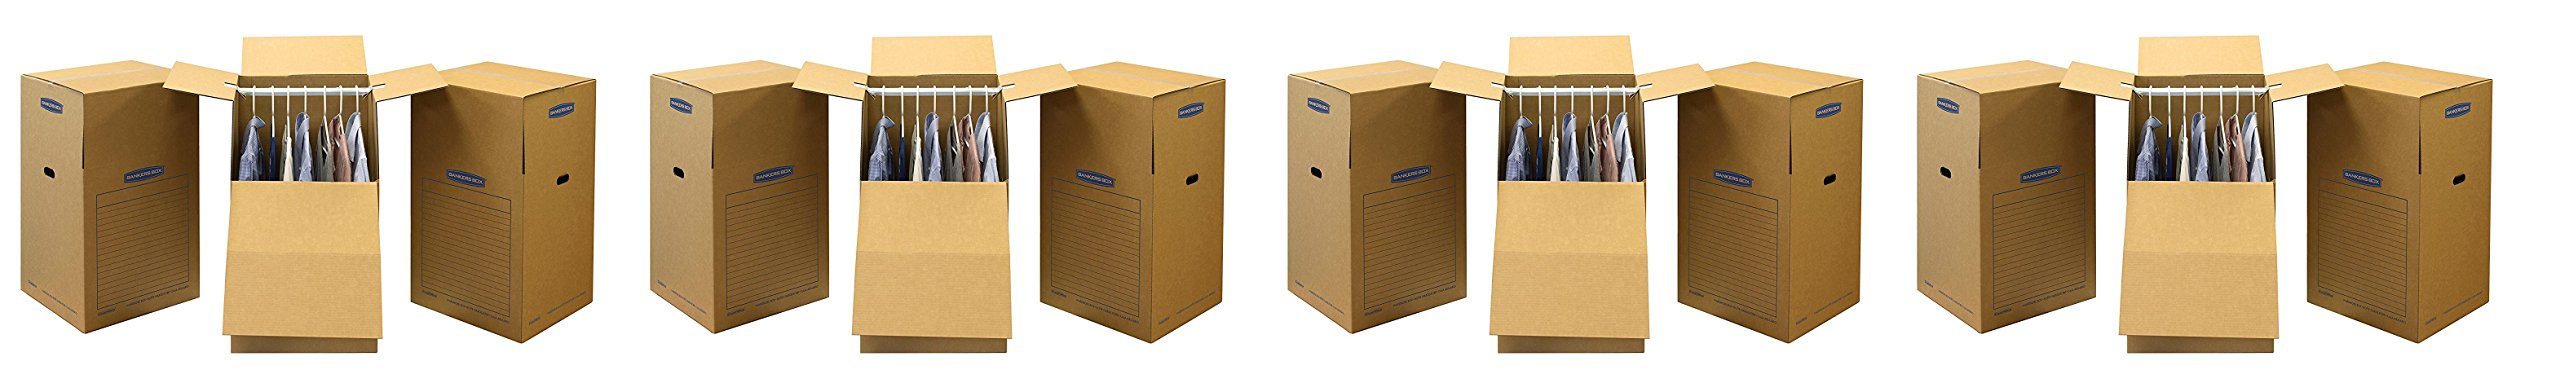 Bankers Box SmoothMove Wardrobe Moving Boxes, Tall, 24 x 24 x 40 inches,(7711001) (4 X Pack of 3)